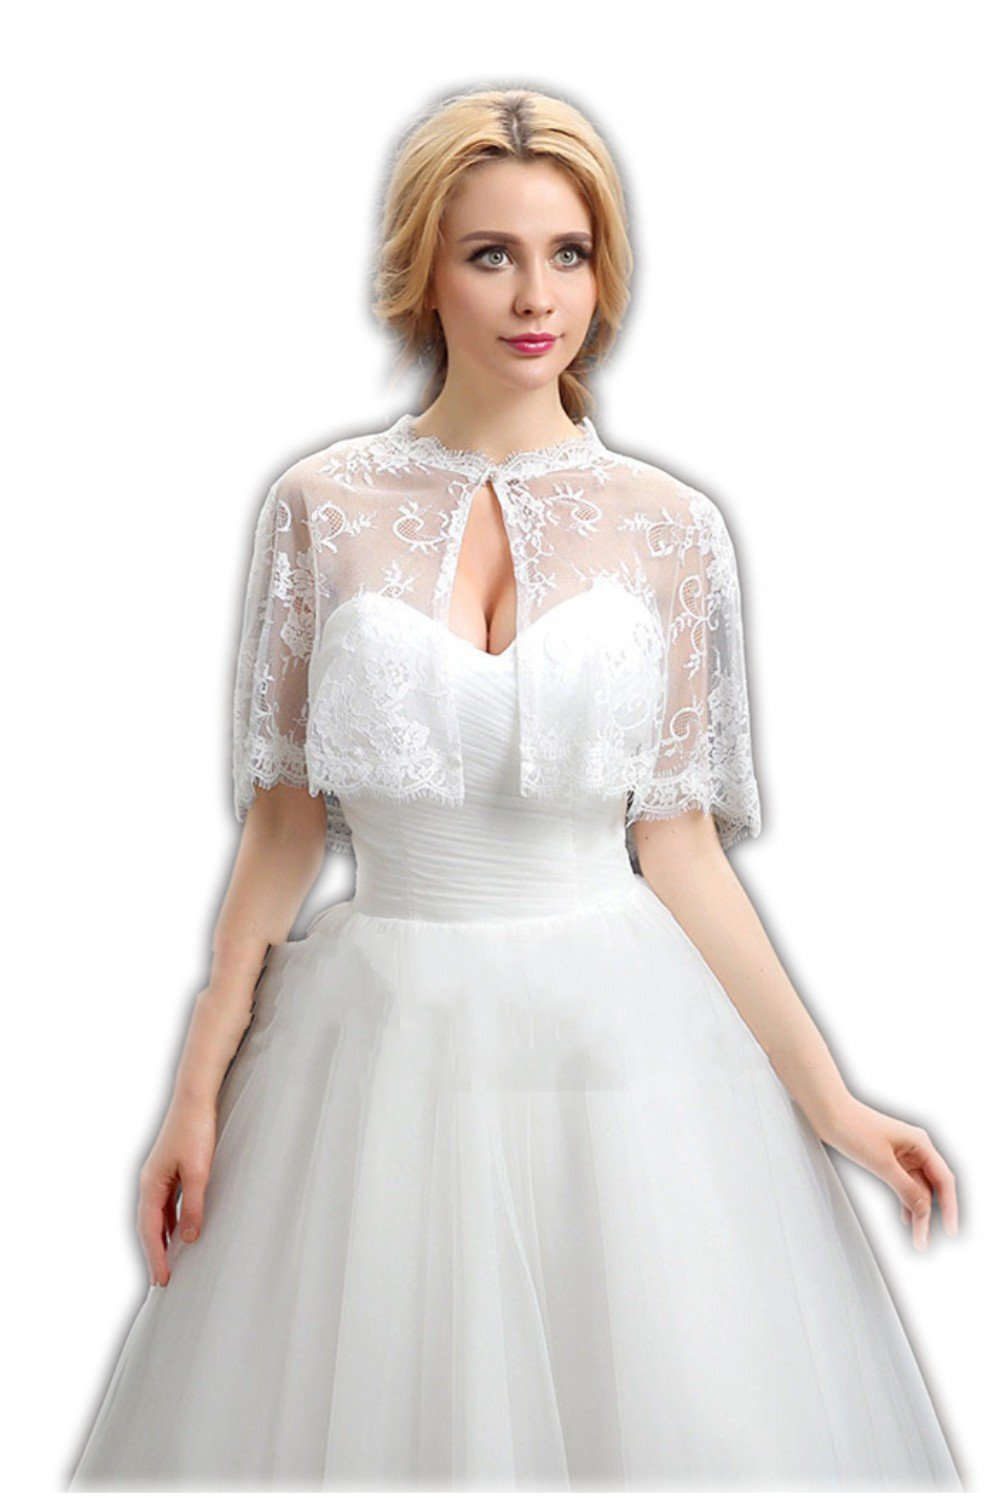 Women's Wedding Bridal Ivory Lace Jacket Bolero Cape Wrap Shoulder Covers